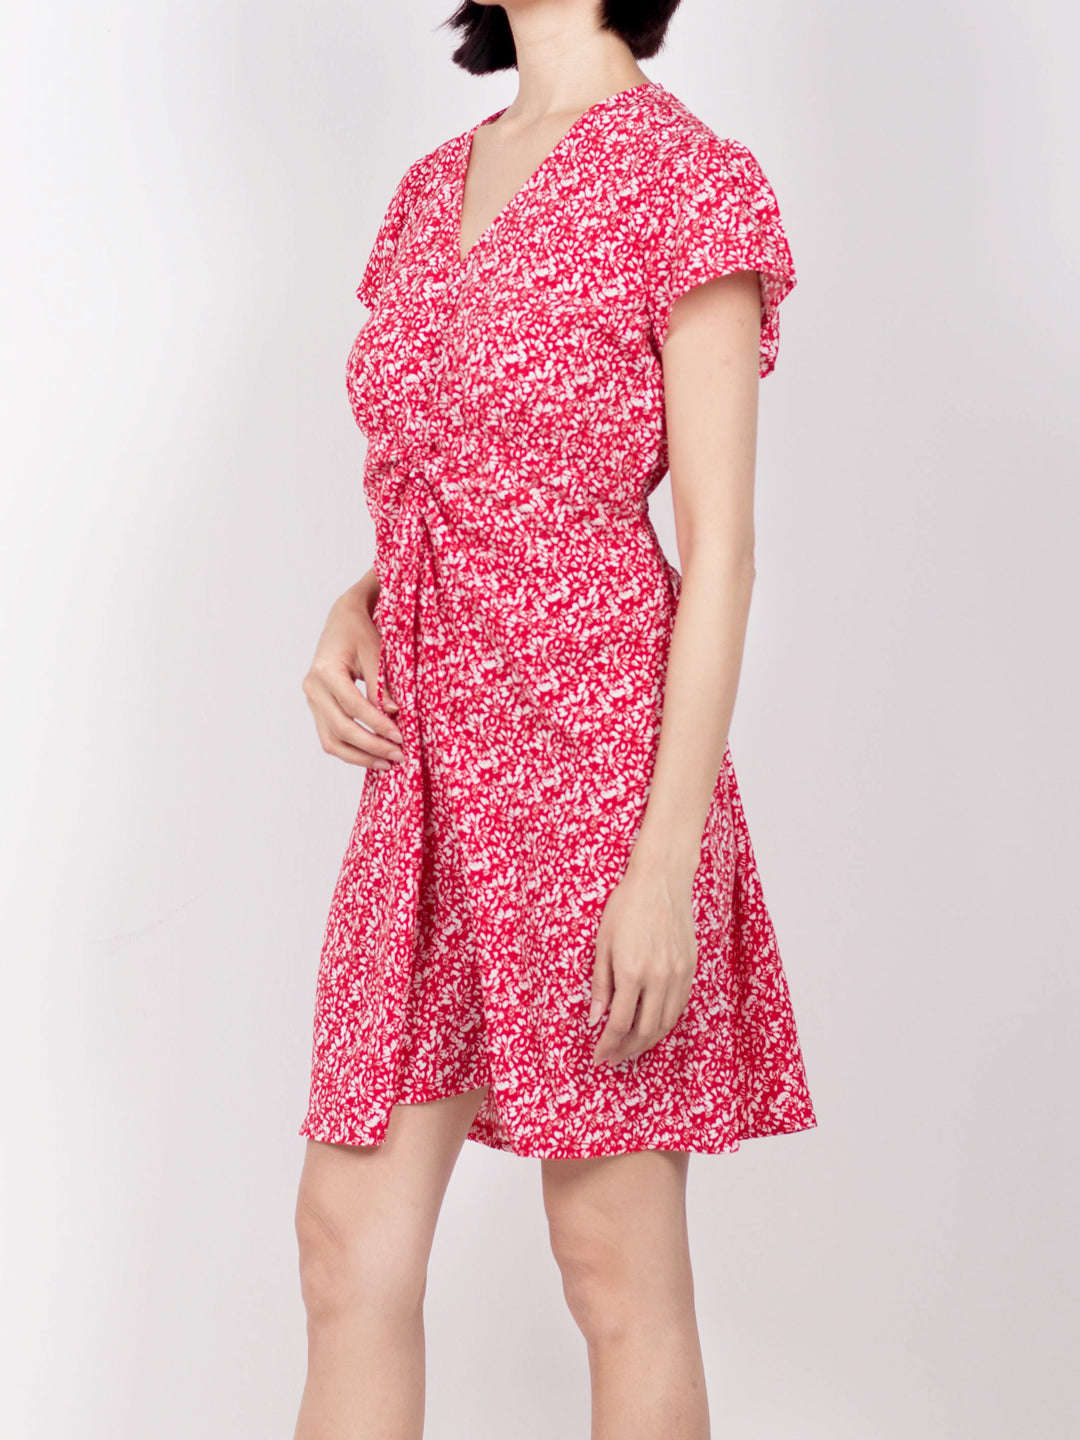 Women Floral Short Sleeve Dress - Red - USH20F2303